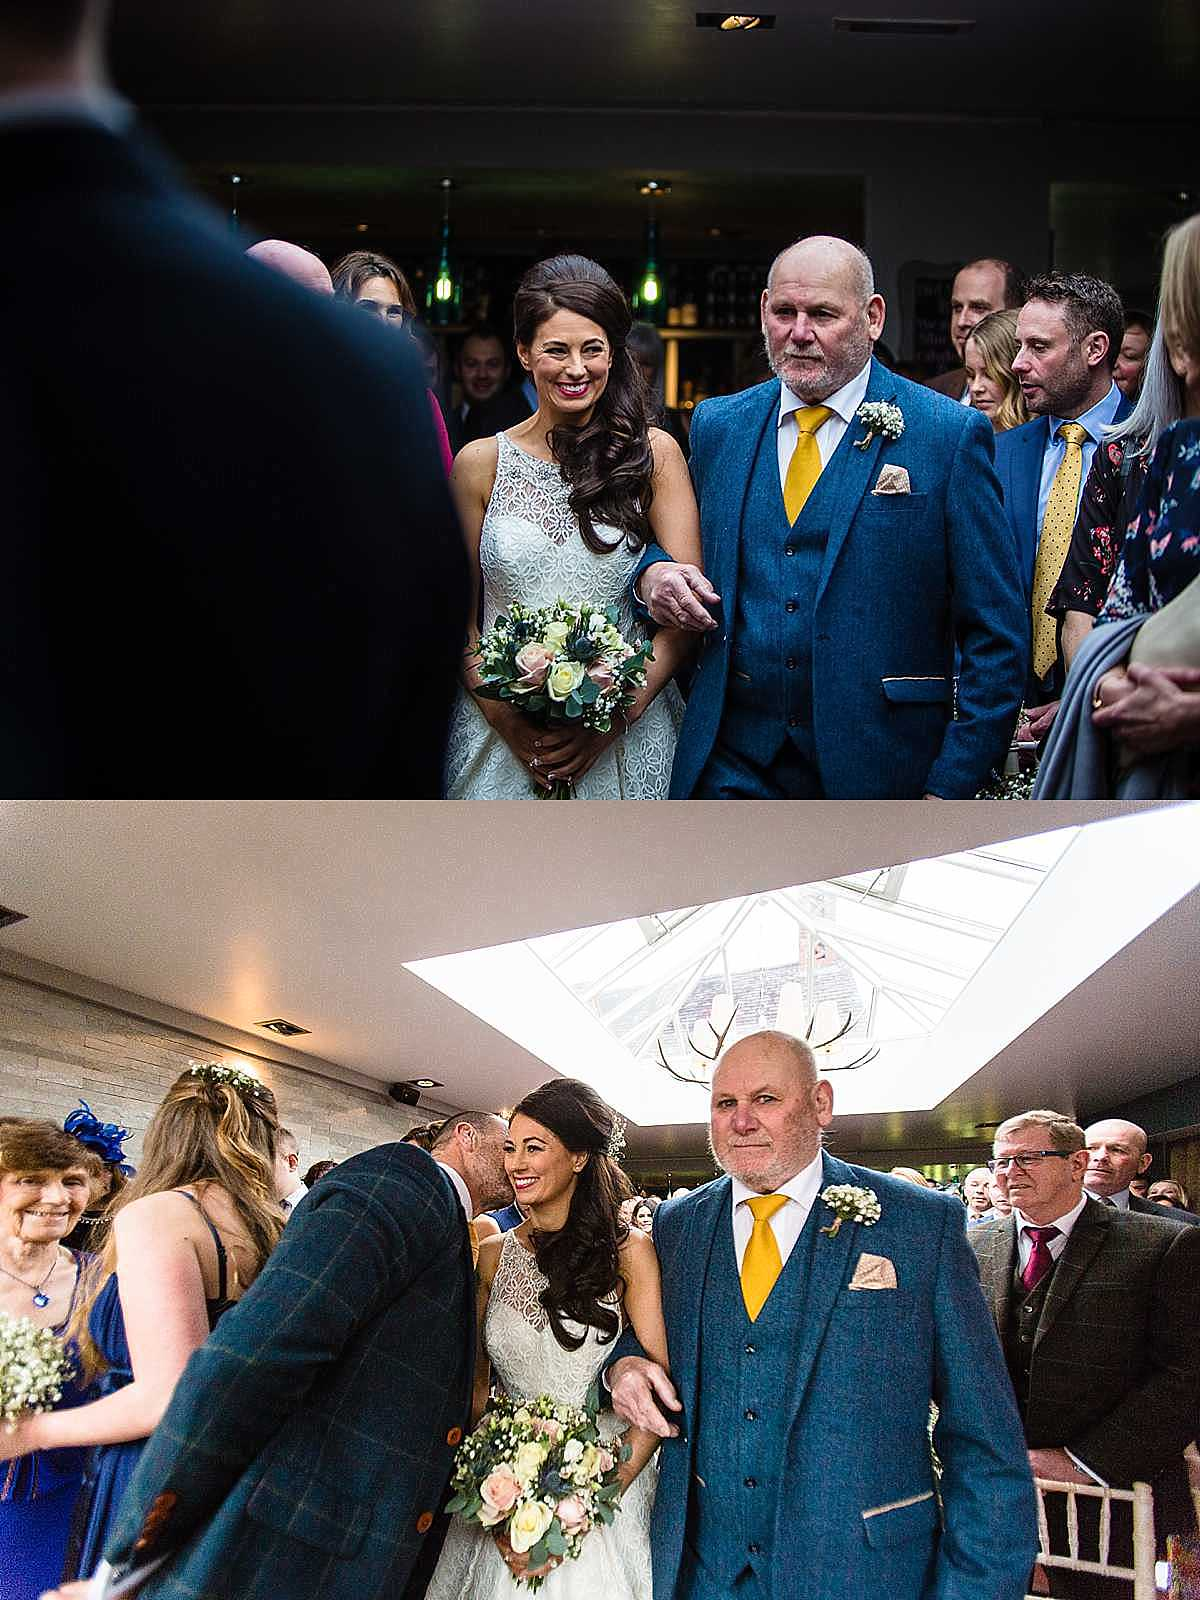 bride walking down the aisle with father of the groom, looking excited as she looks at guest coming down the aisle and groom gives her a kiss